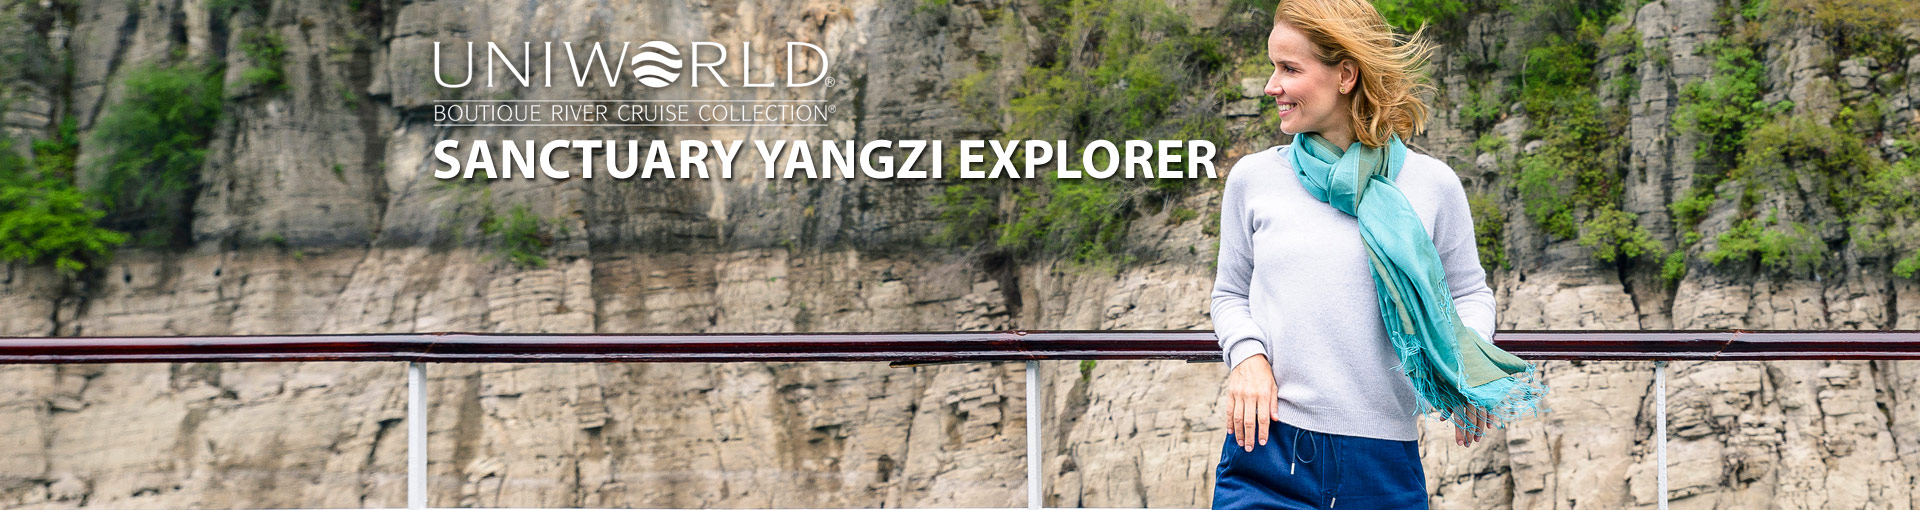 Uniworld Sanctuary Yangzi Explorer